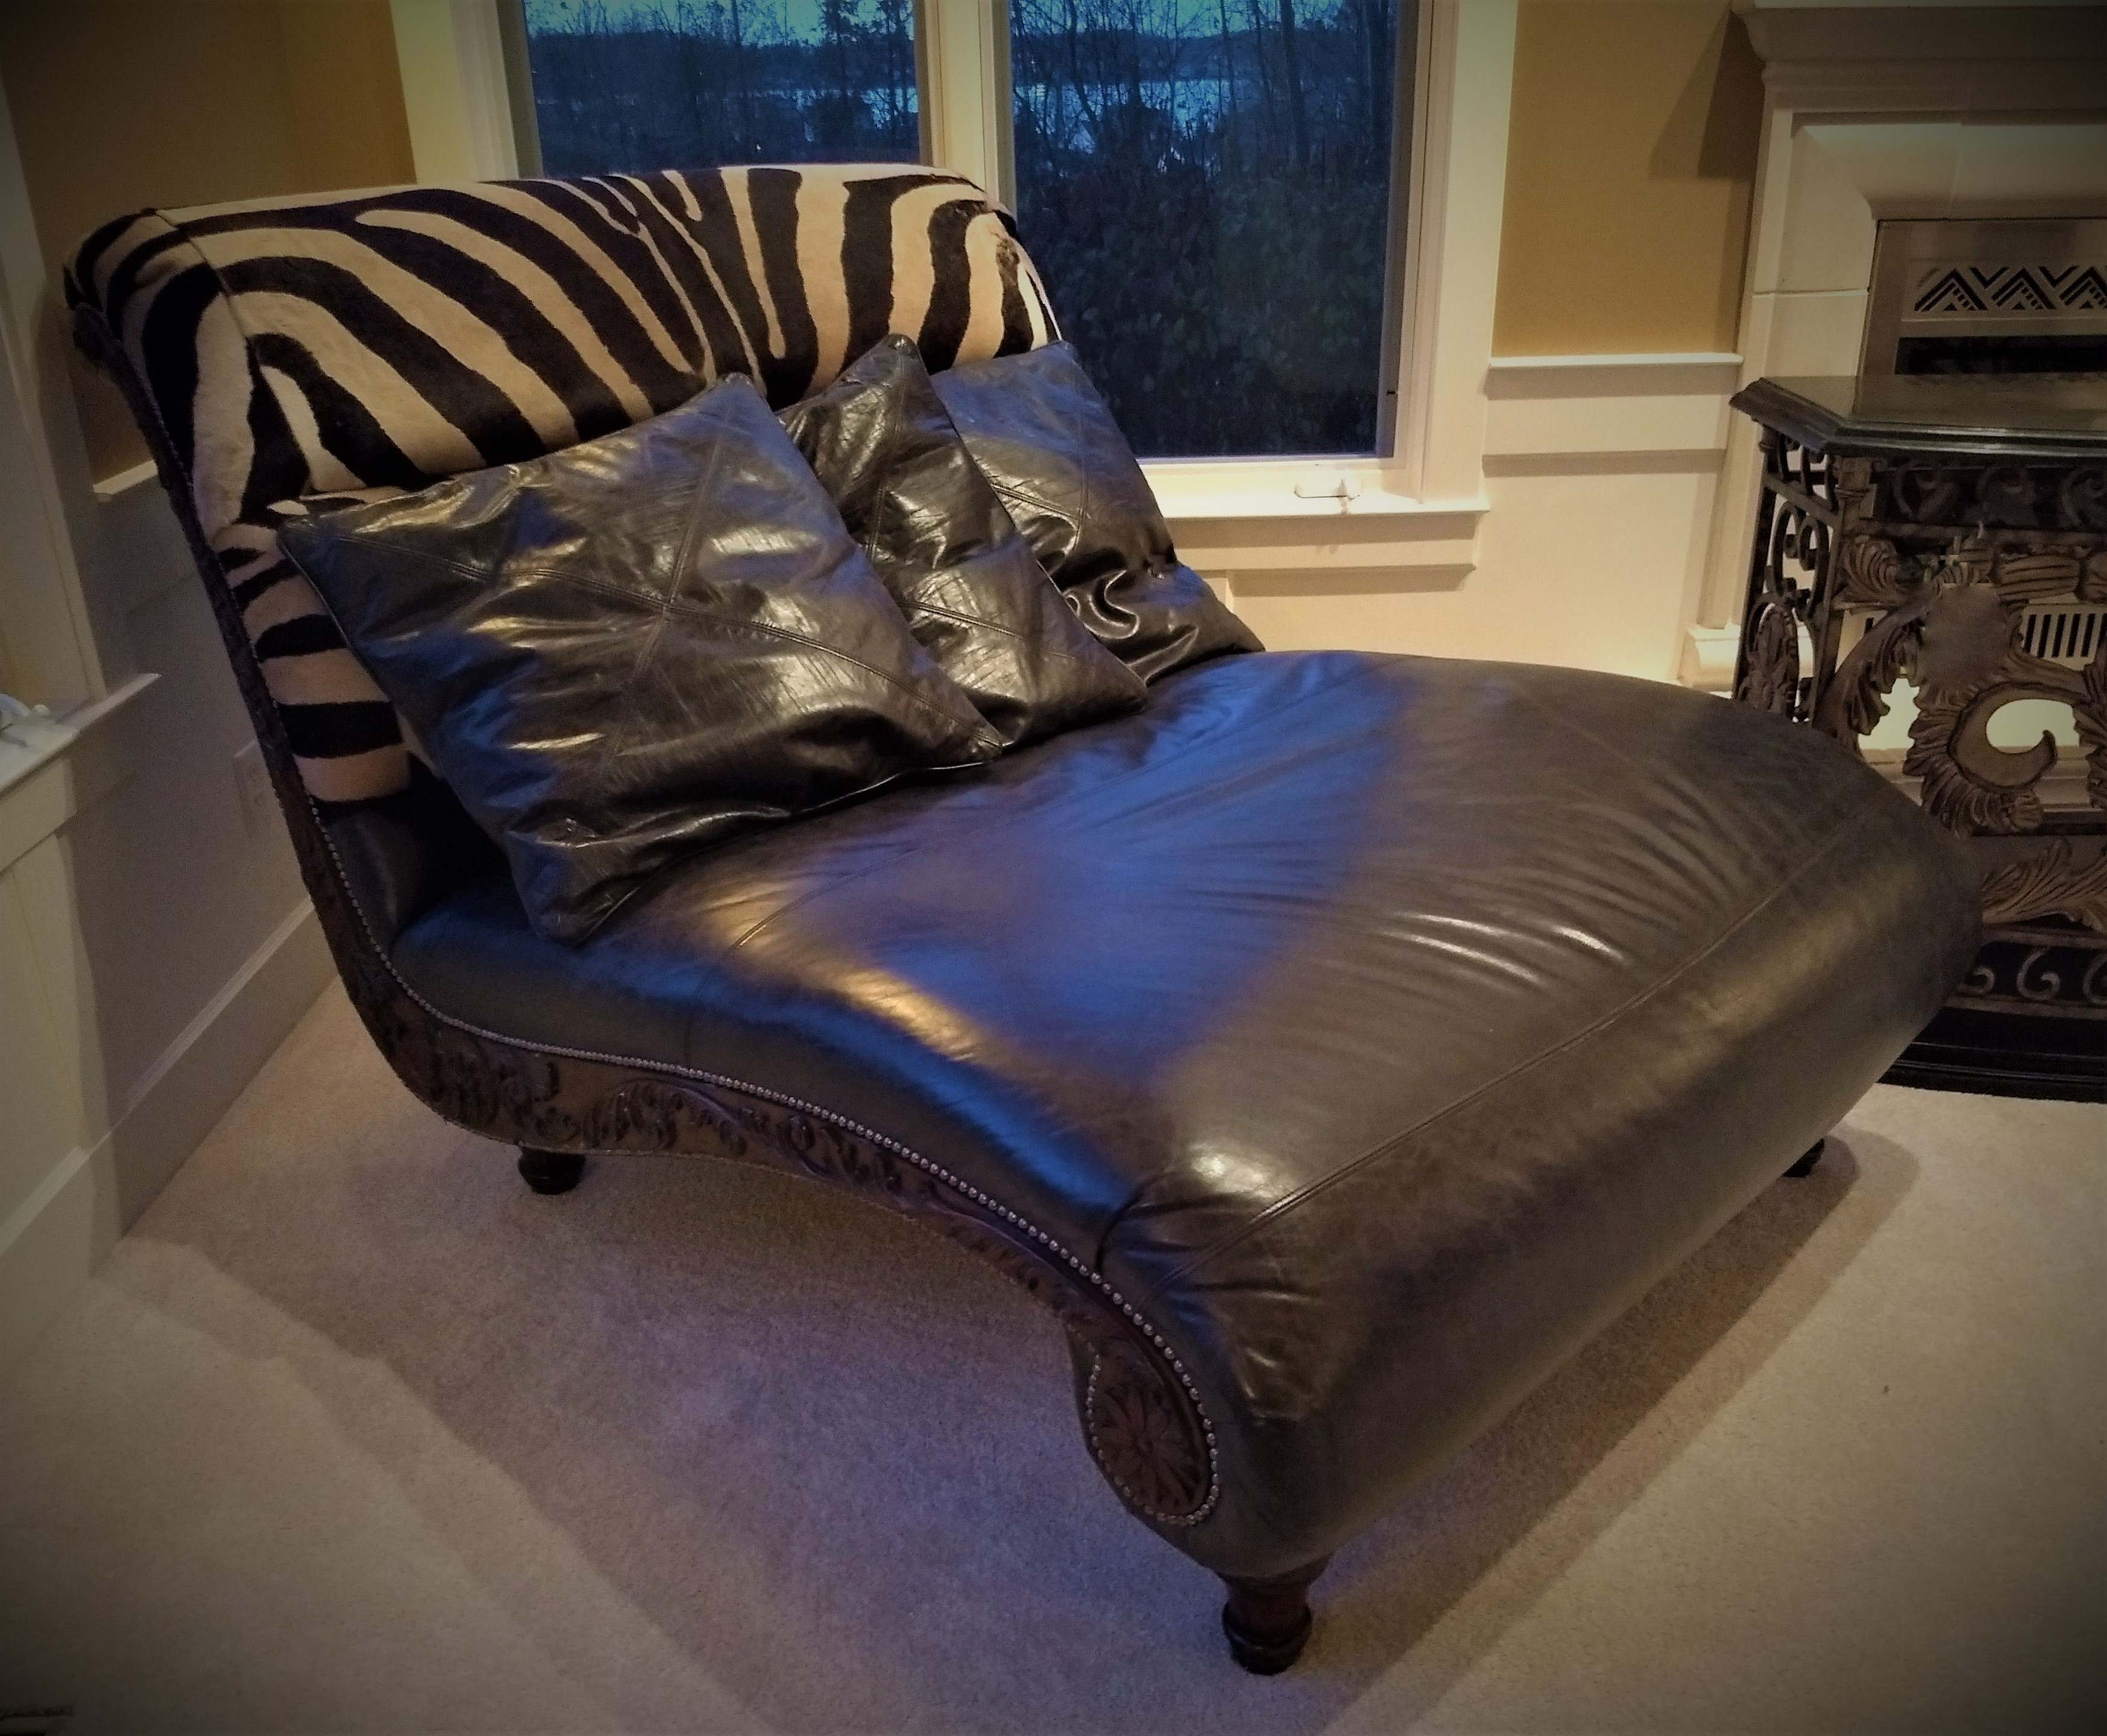 double chaise lounge leather with zebra print upholstery and 3 pillows